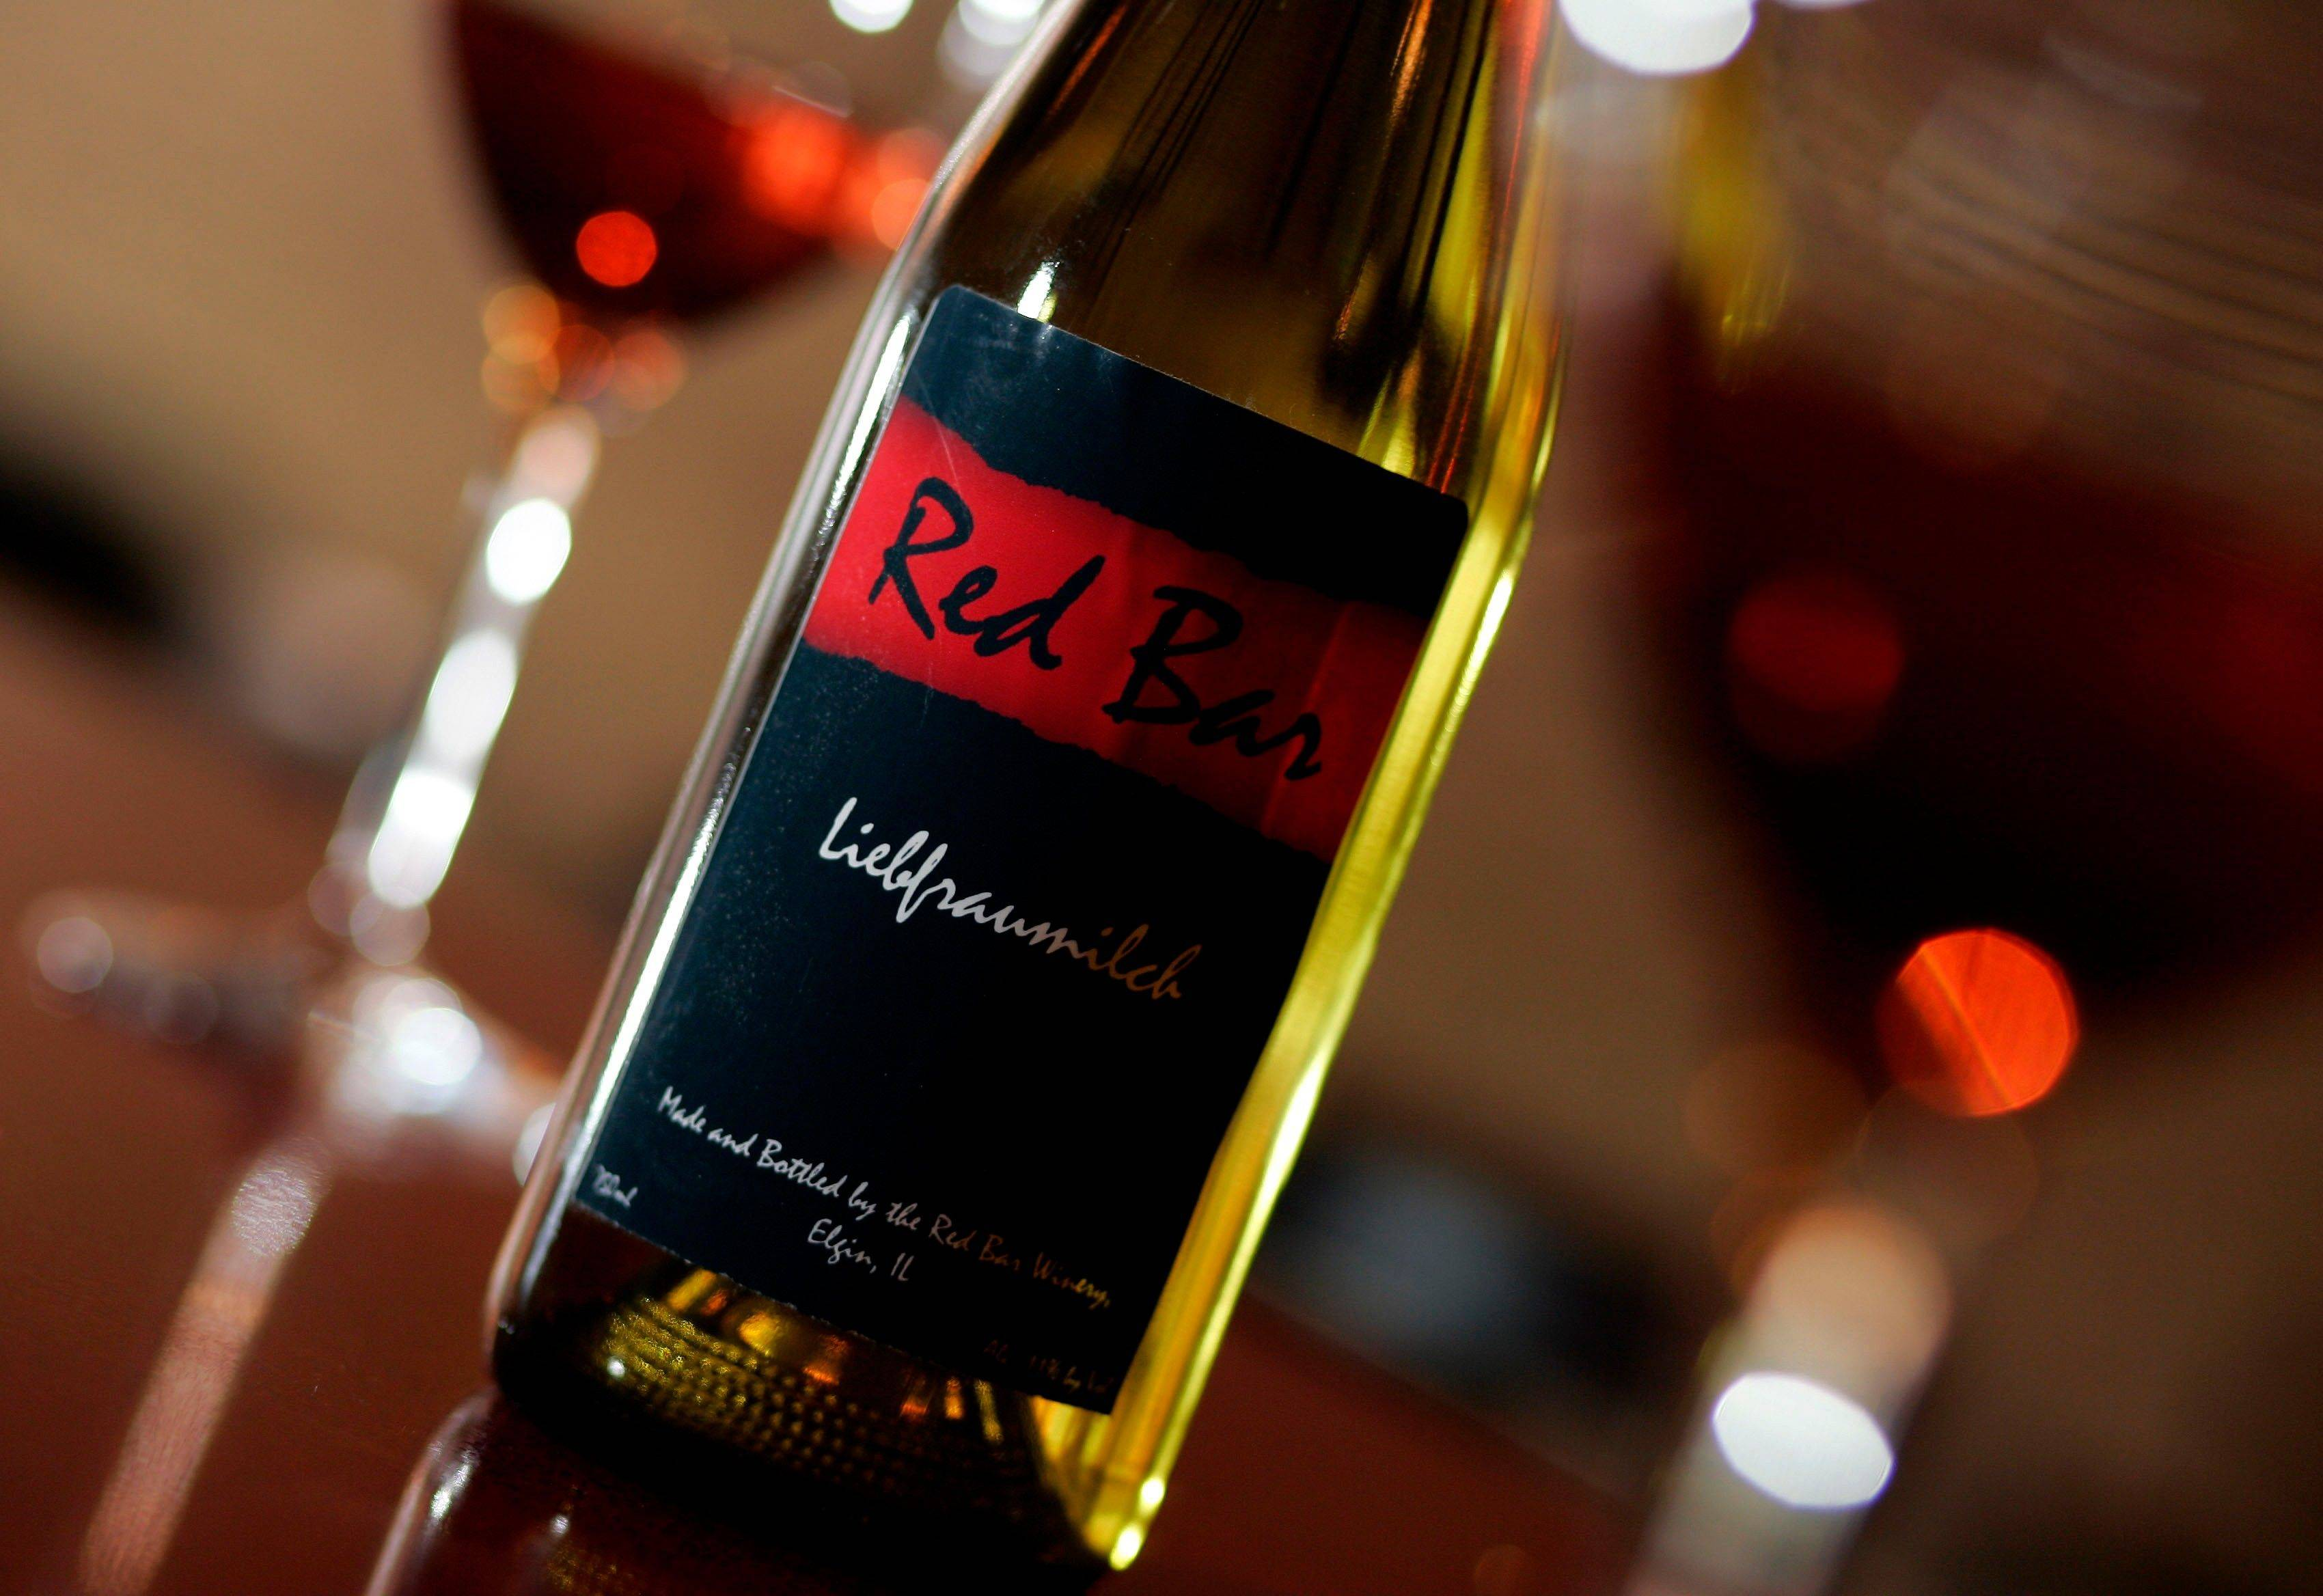 The Red Bar Winery opened in Elgin in 2009. The restaurant, which is known for specialty wines made on site, has not applied to renew its liquor license.